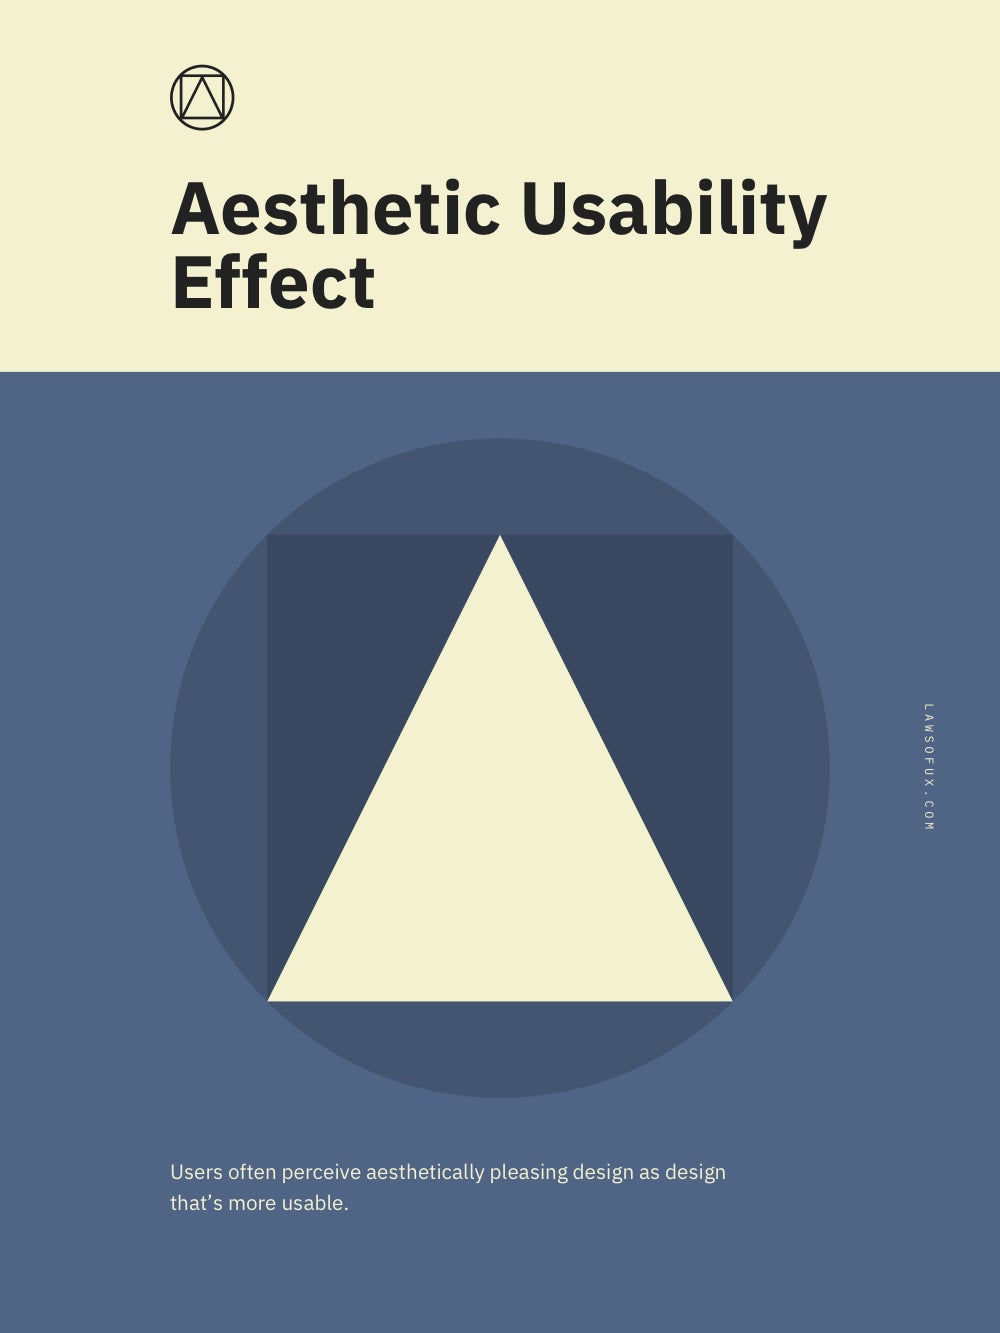 Aesthetic Usability Effect Poster